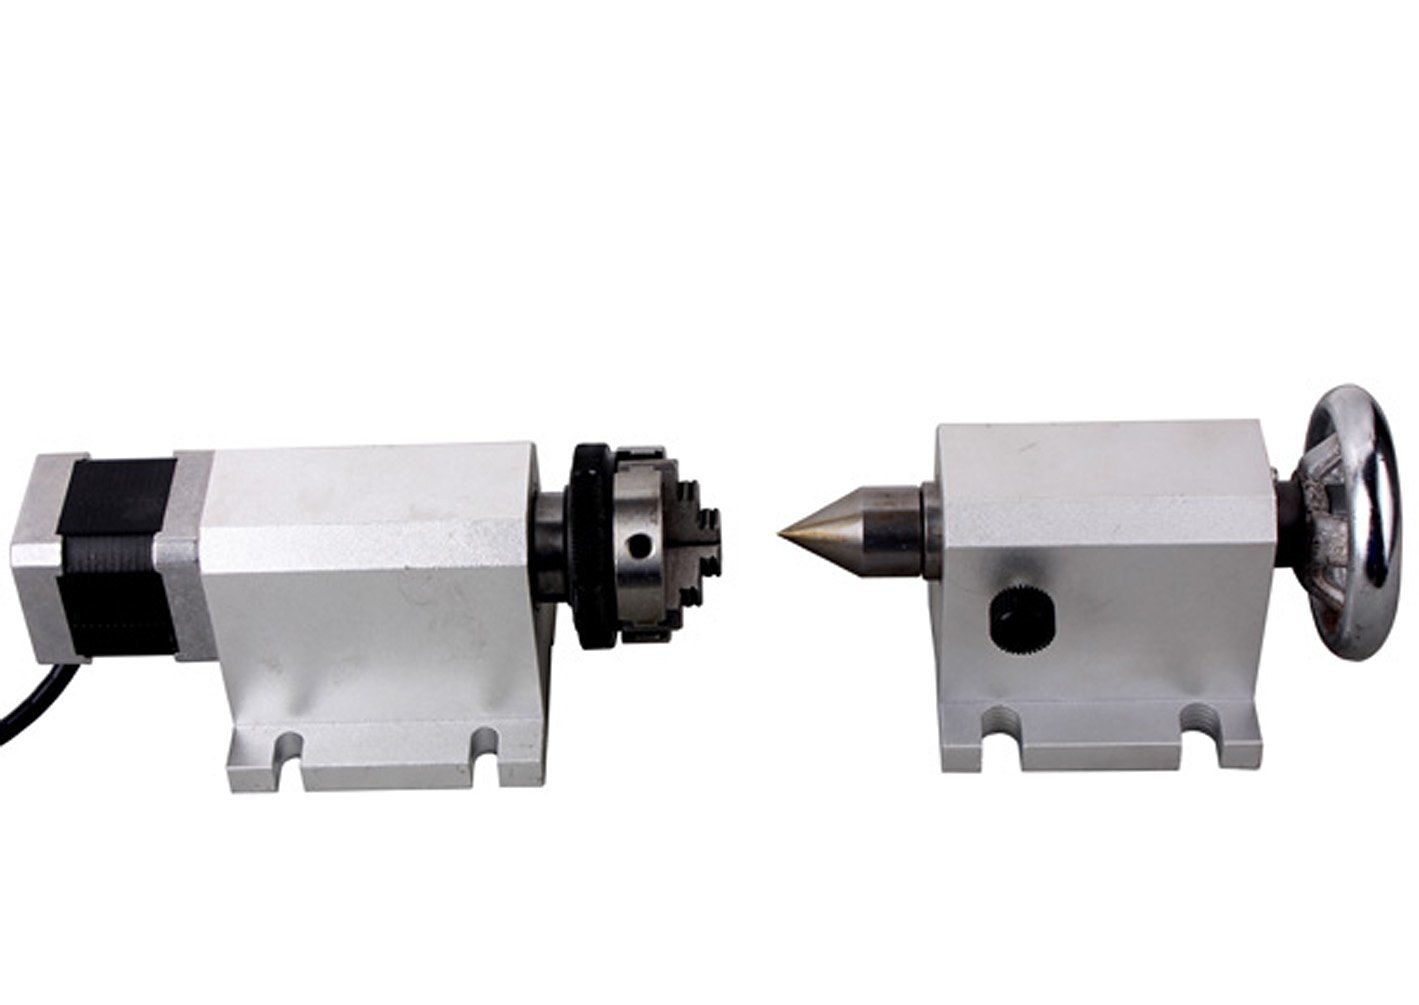 Sunwin CNC F Style A-Axis 4th-Axis Router Rotational Rotary Axis 3-Jaw 80mm+Tailstock